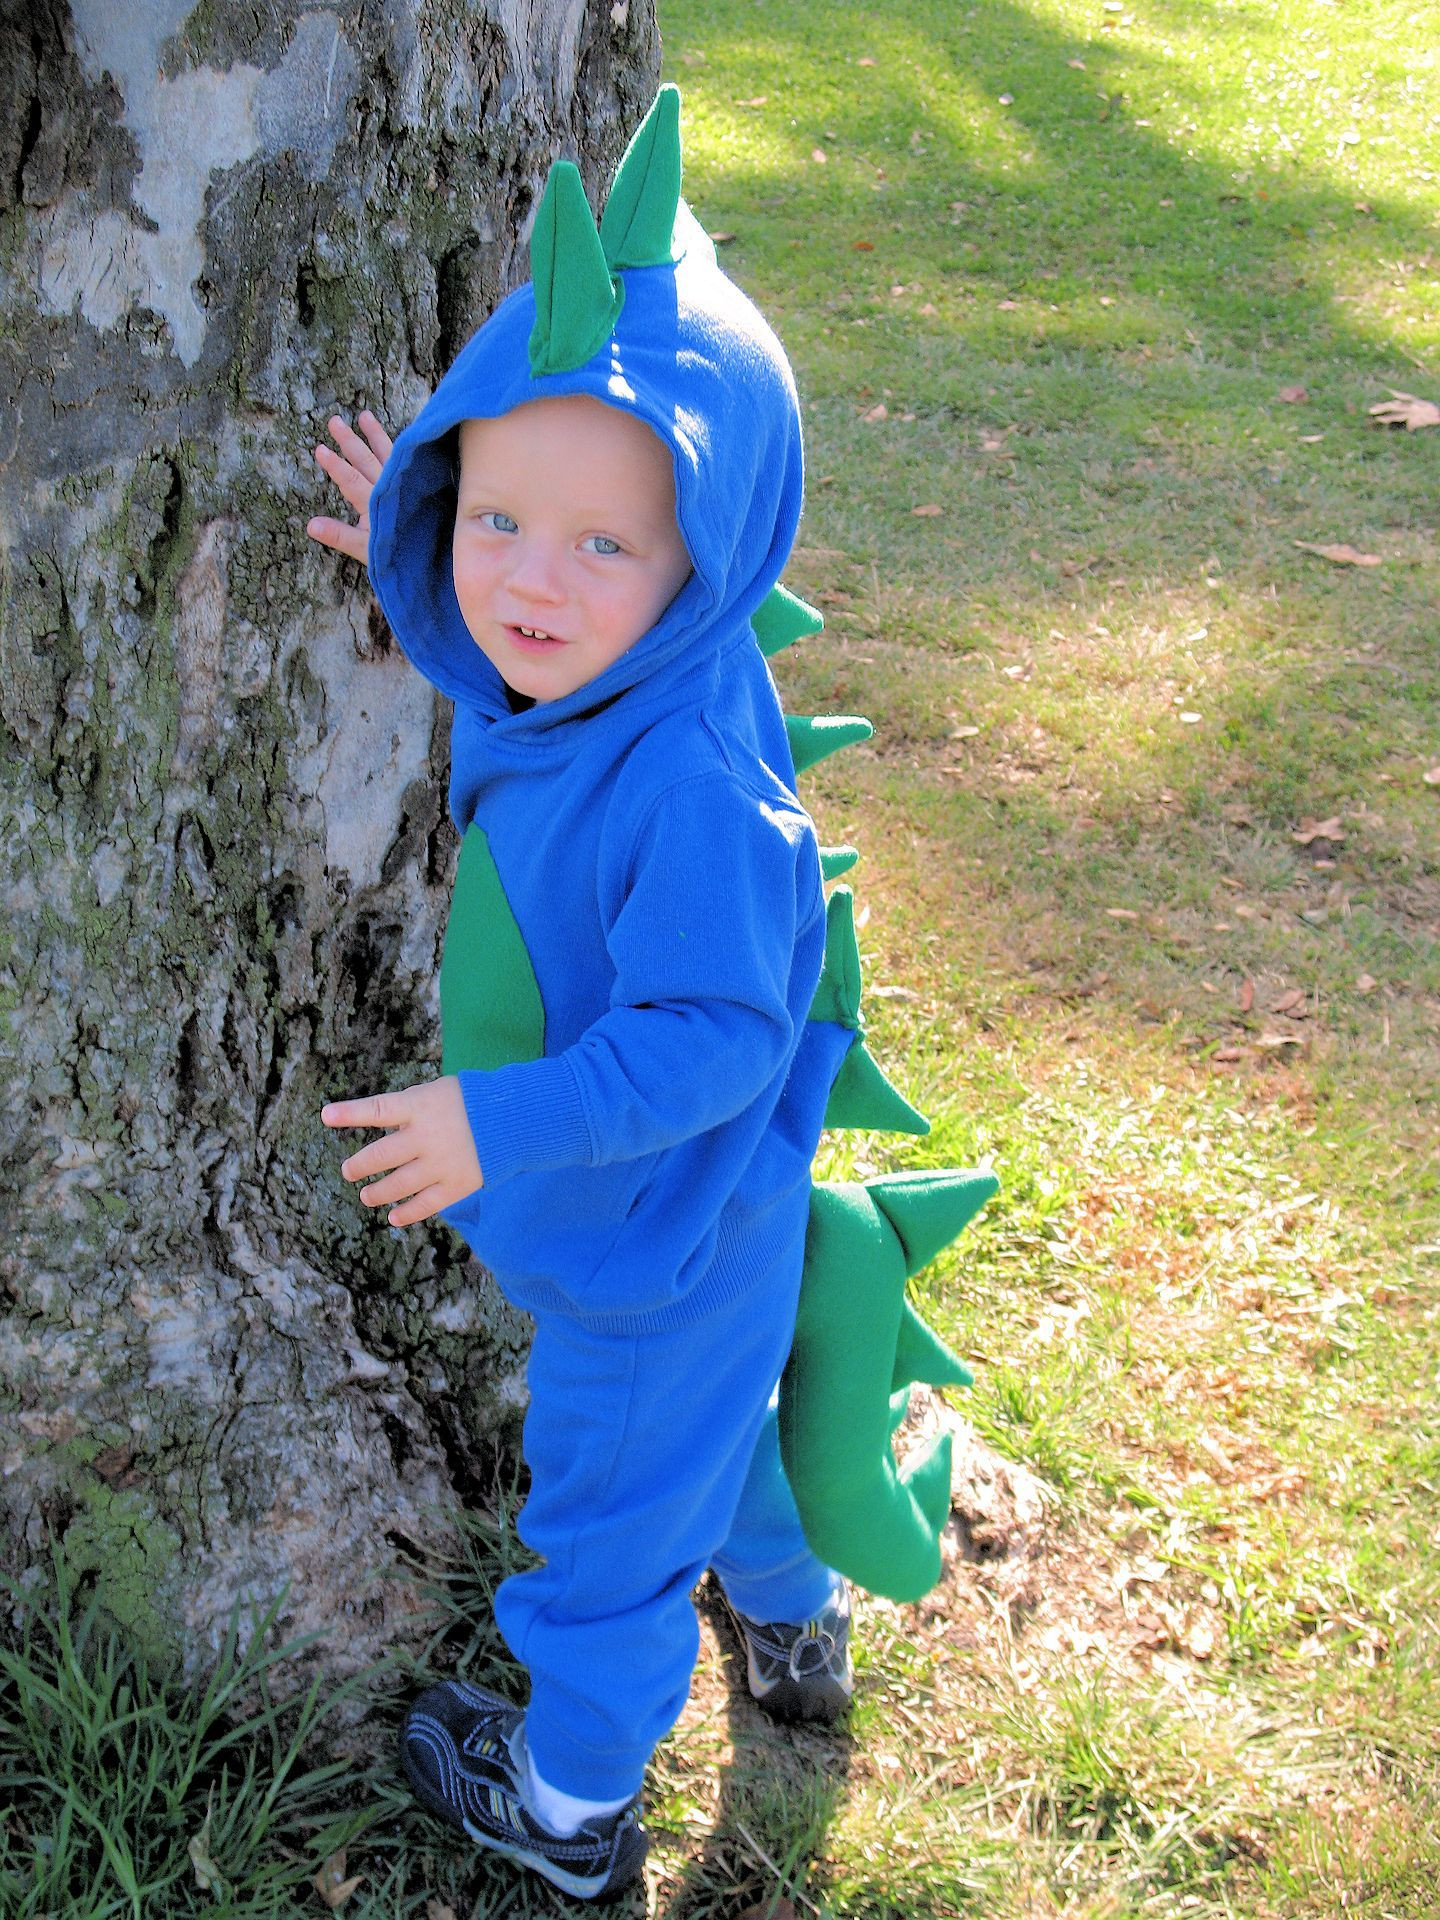 Best ideas about DIY Dinosaur Costume Toddler . Save or Pin Homemade Dinosaur Costume Get hooded sweatshirts and Now.